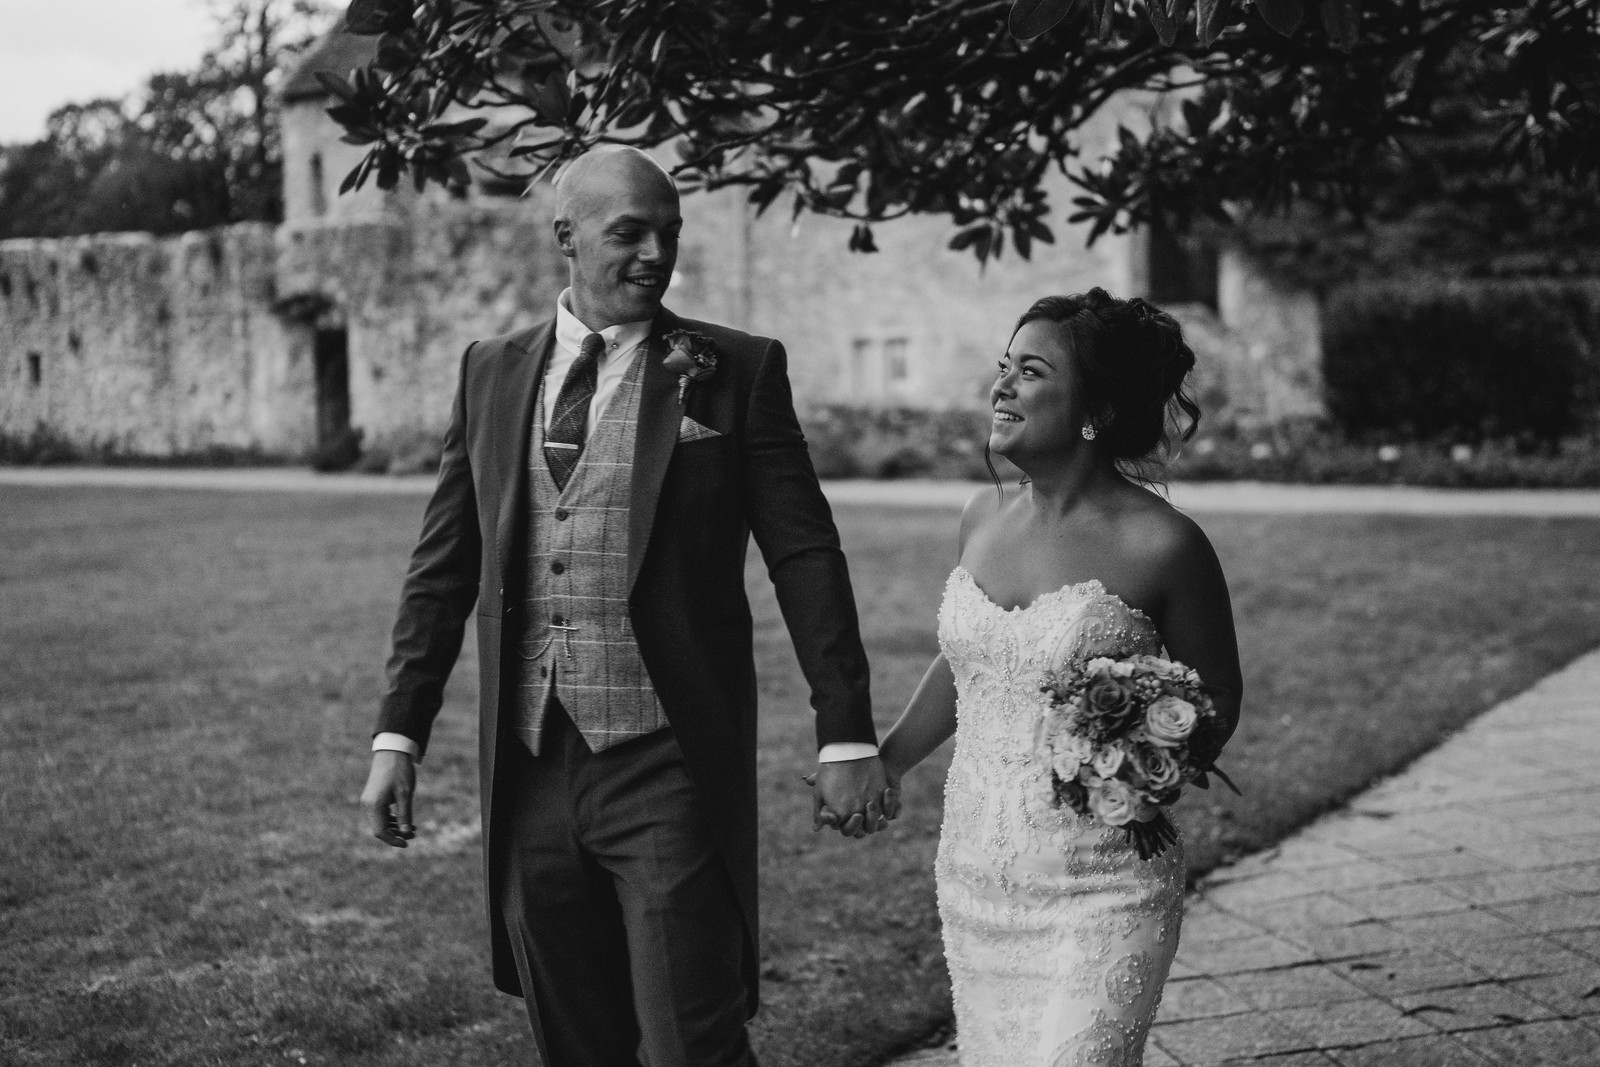 Bride and groom full of smiles